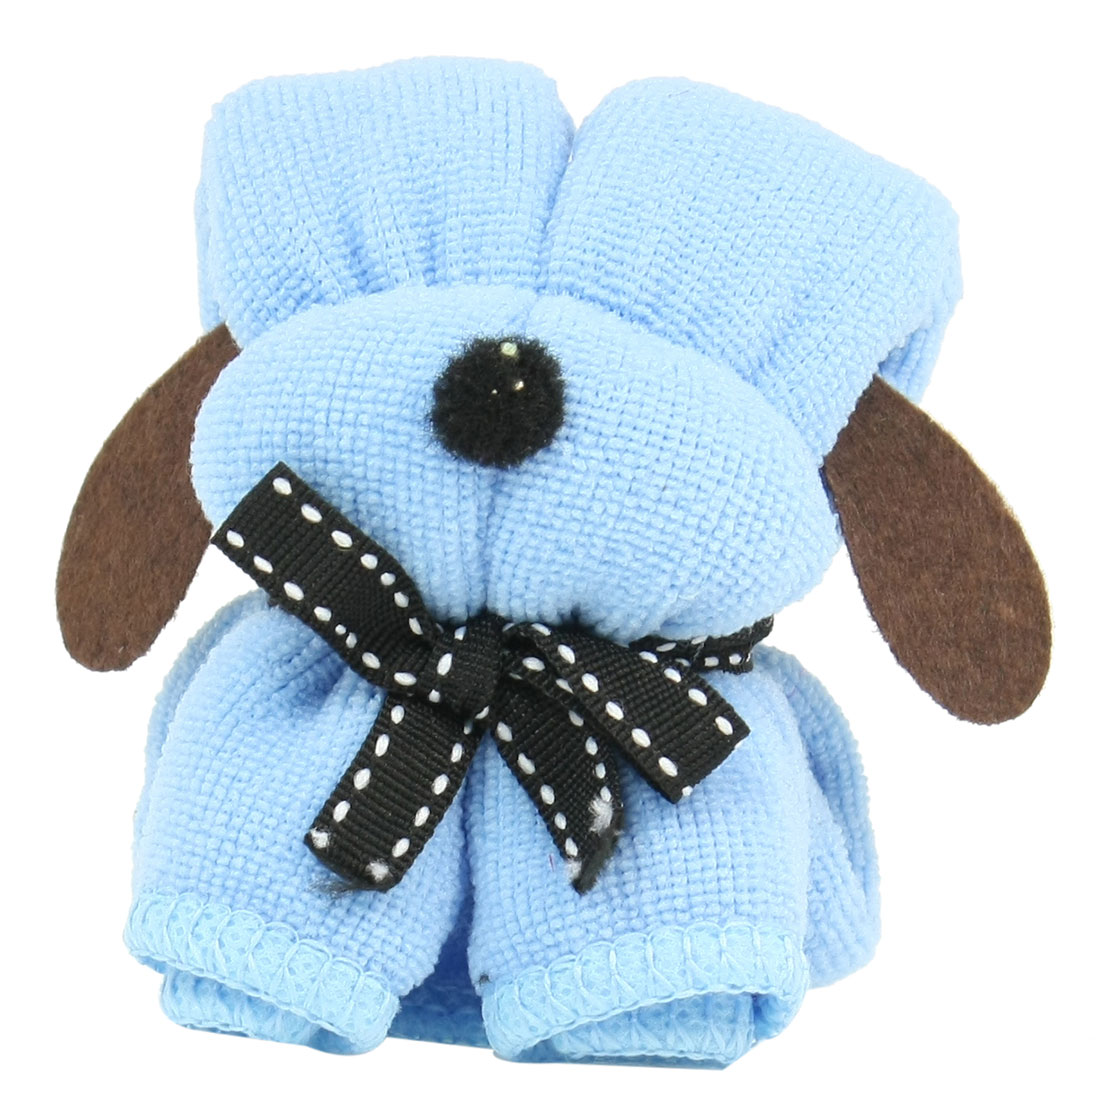 Birthday Party Ornament Light Blue Black Puppy Pet Dog Shaped Terry Towel